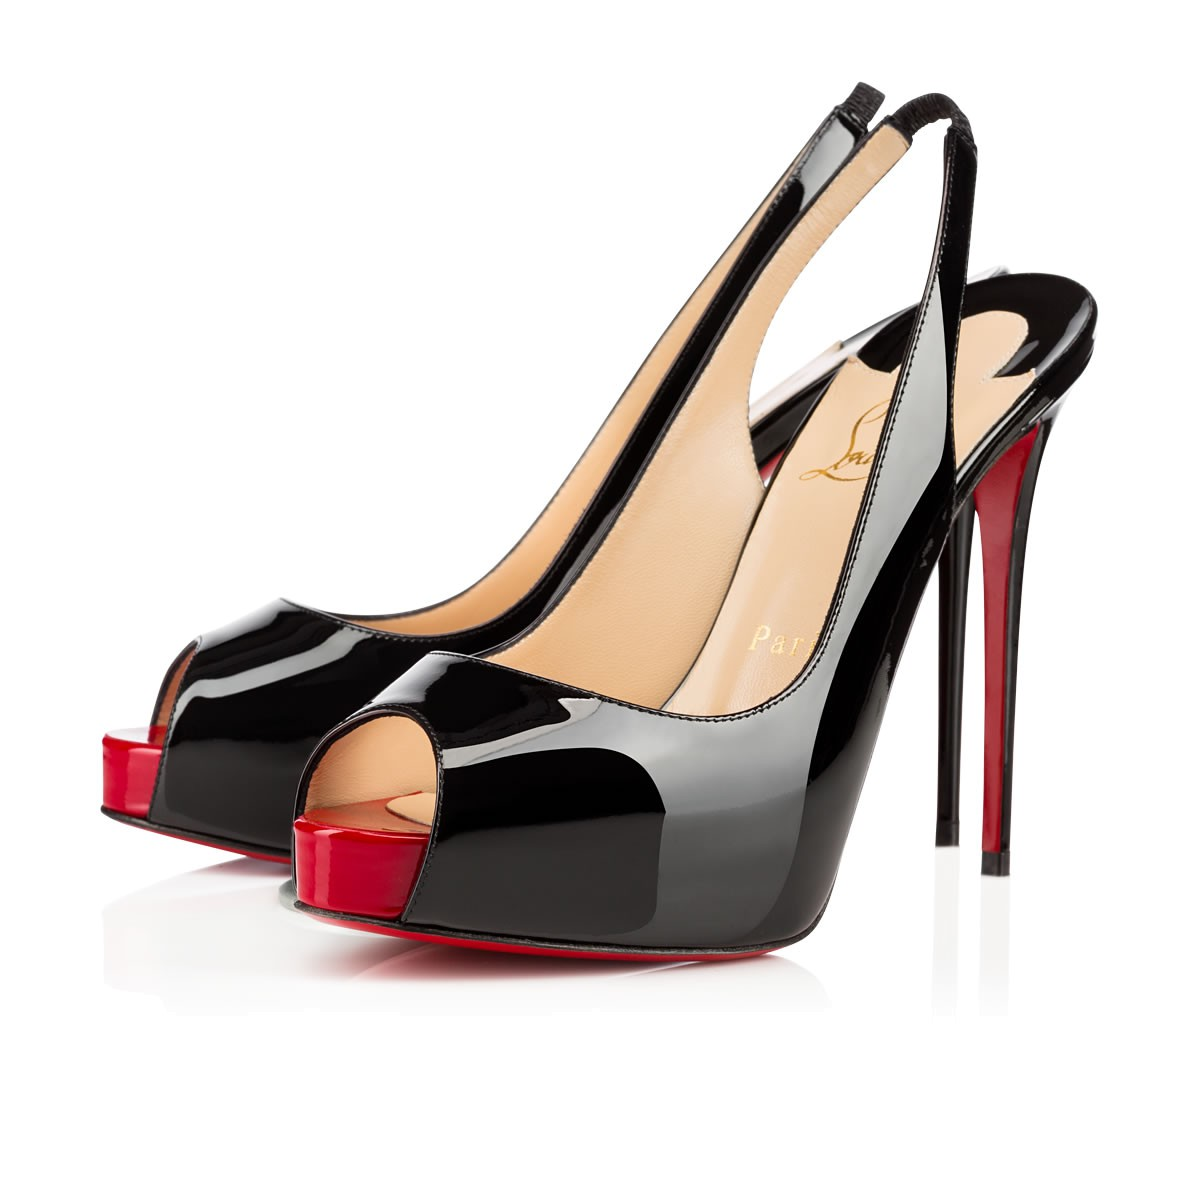 184f158b551 PRIVATE NUMBER 120 Black Patent calfskin - Women Shoes - Christian Louboutin